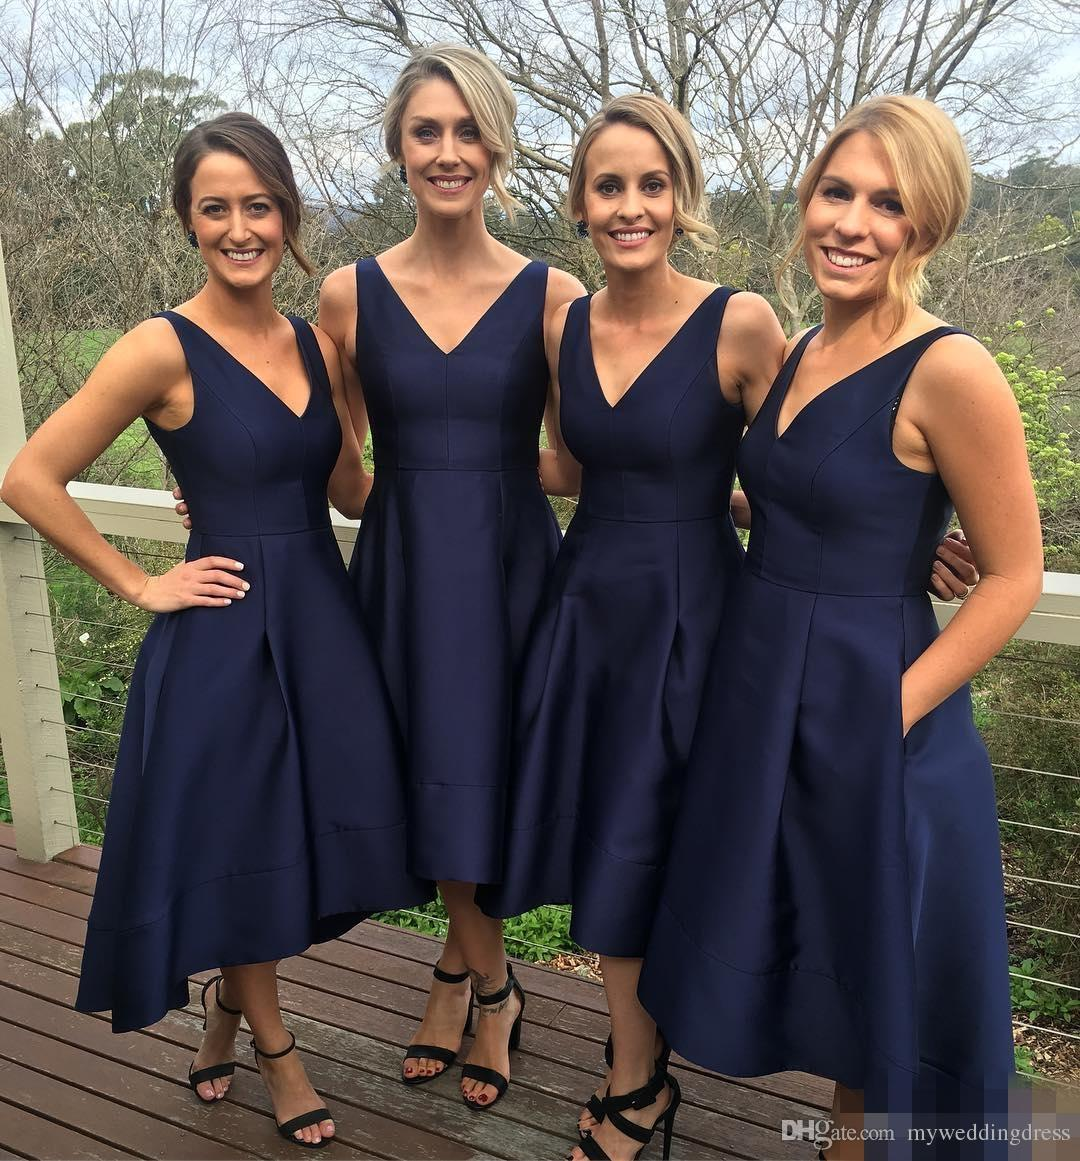 Elegant bridesmaid dressbridesmaid dresseswedding guest dress on elegant bridesmaid dressbridesmaid dresseswedding guest dress ombrellifo Choice Image